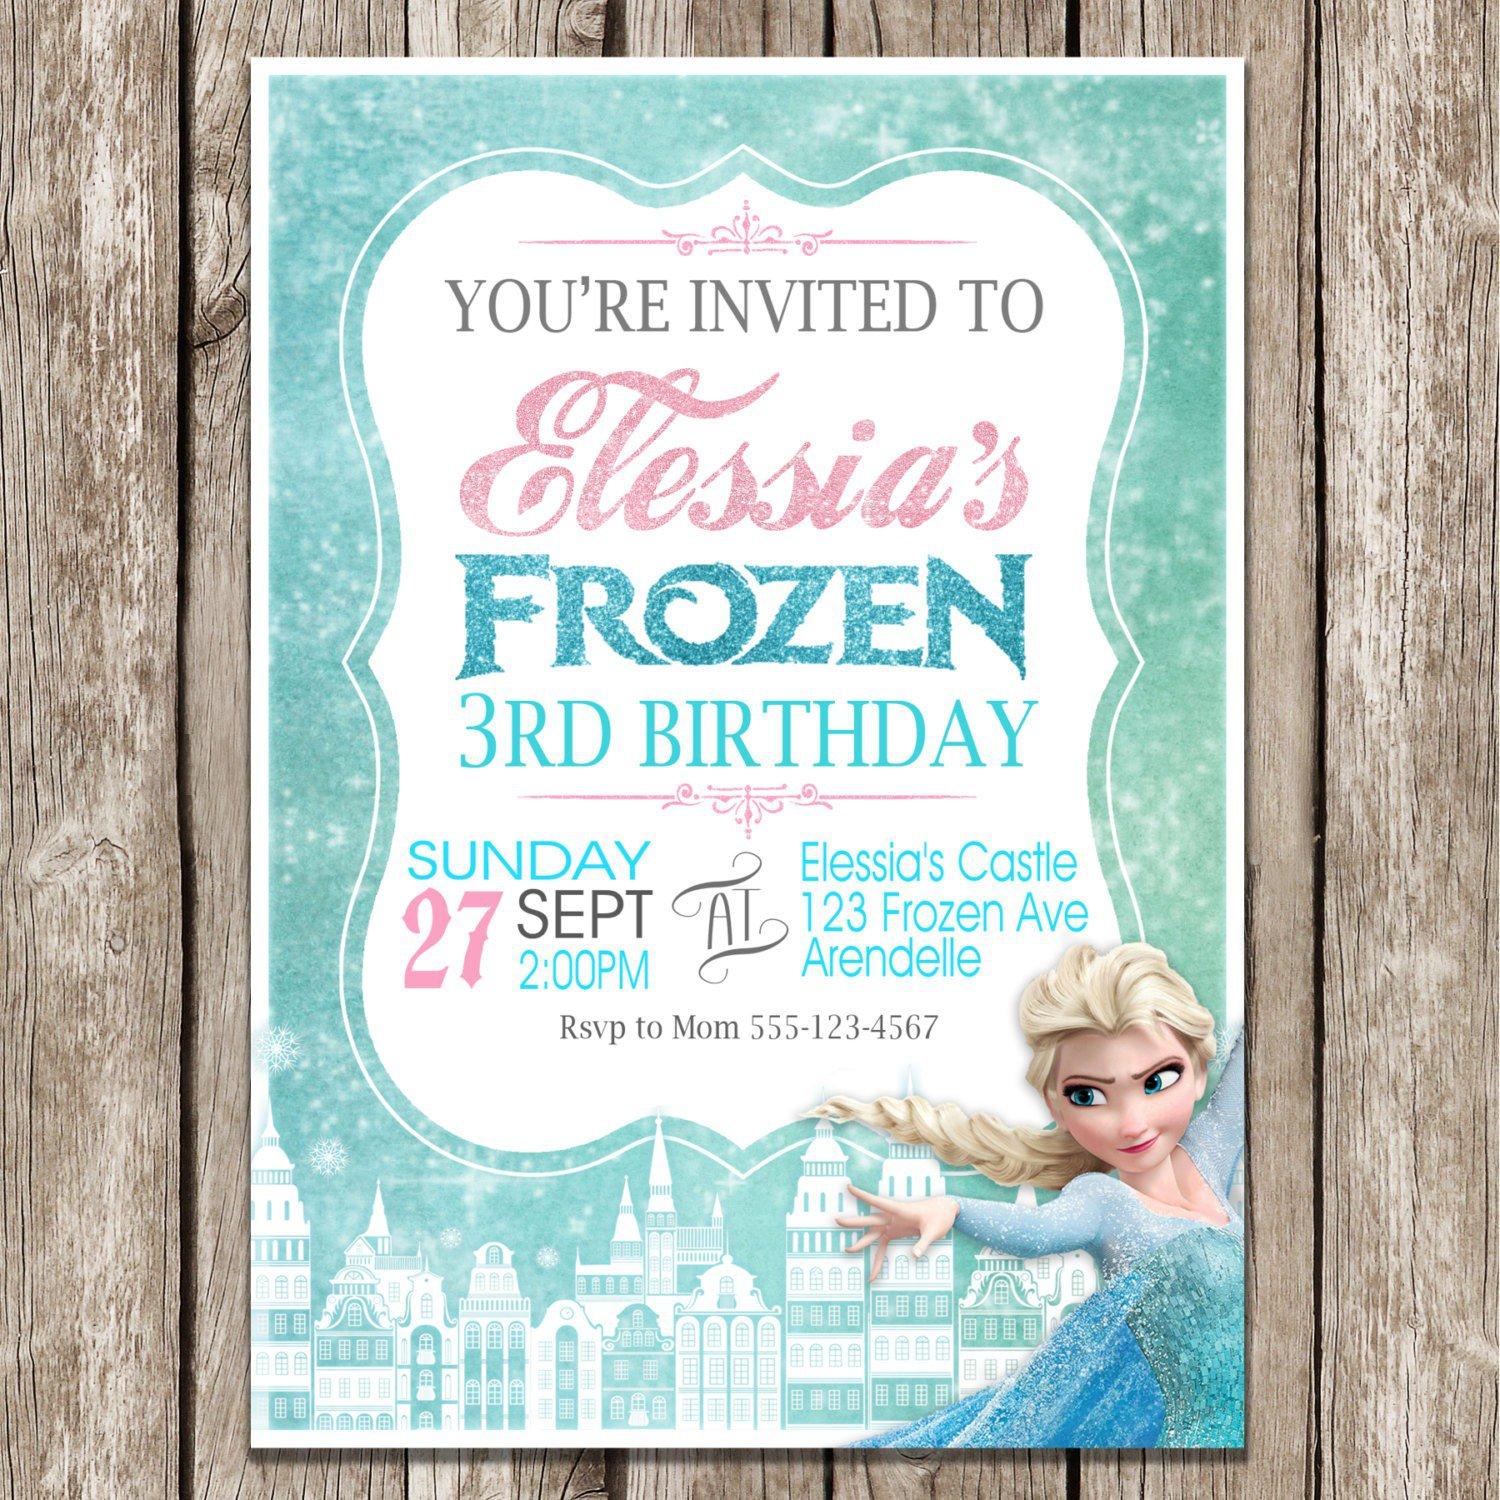 Birthday Invitations – Snowflake Birthday Invitations